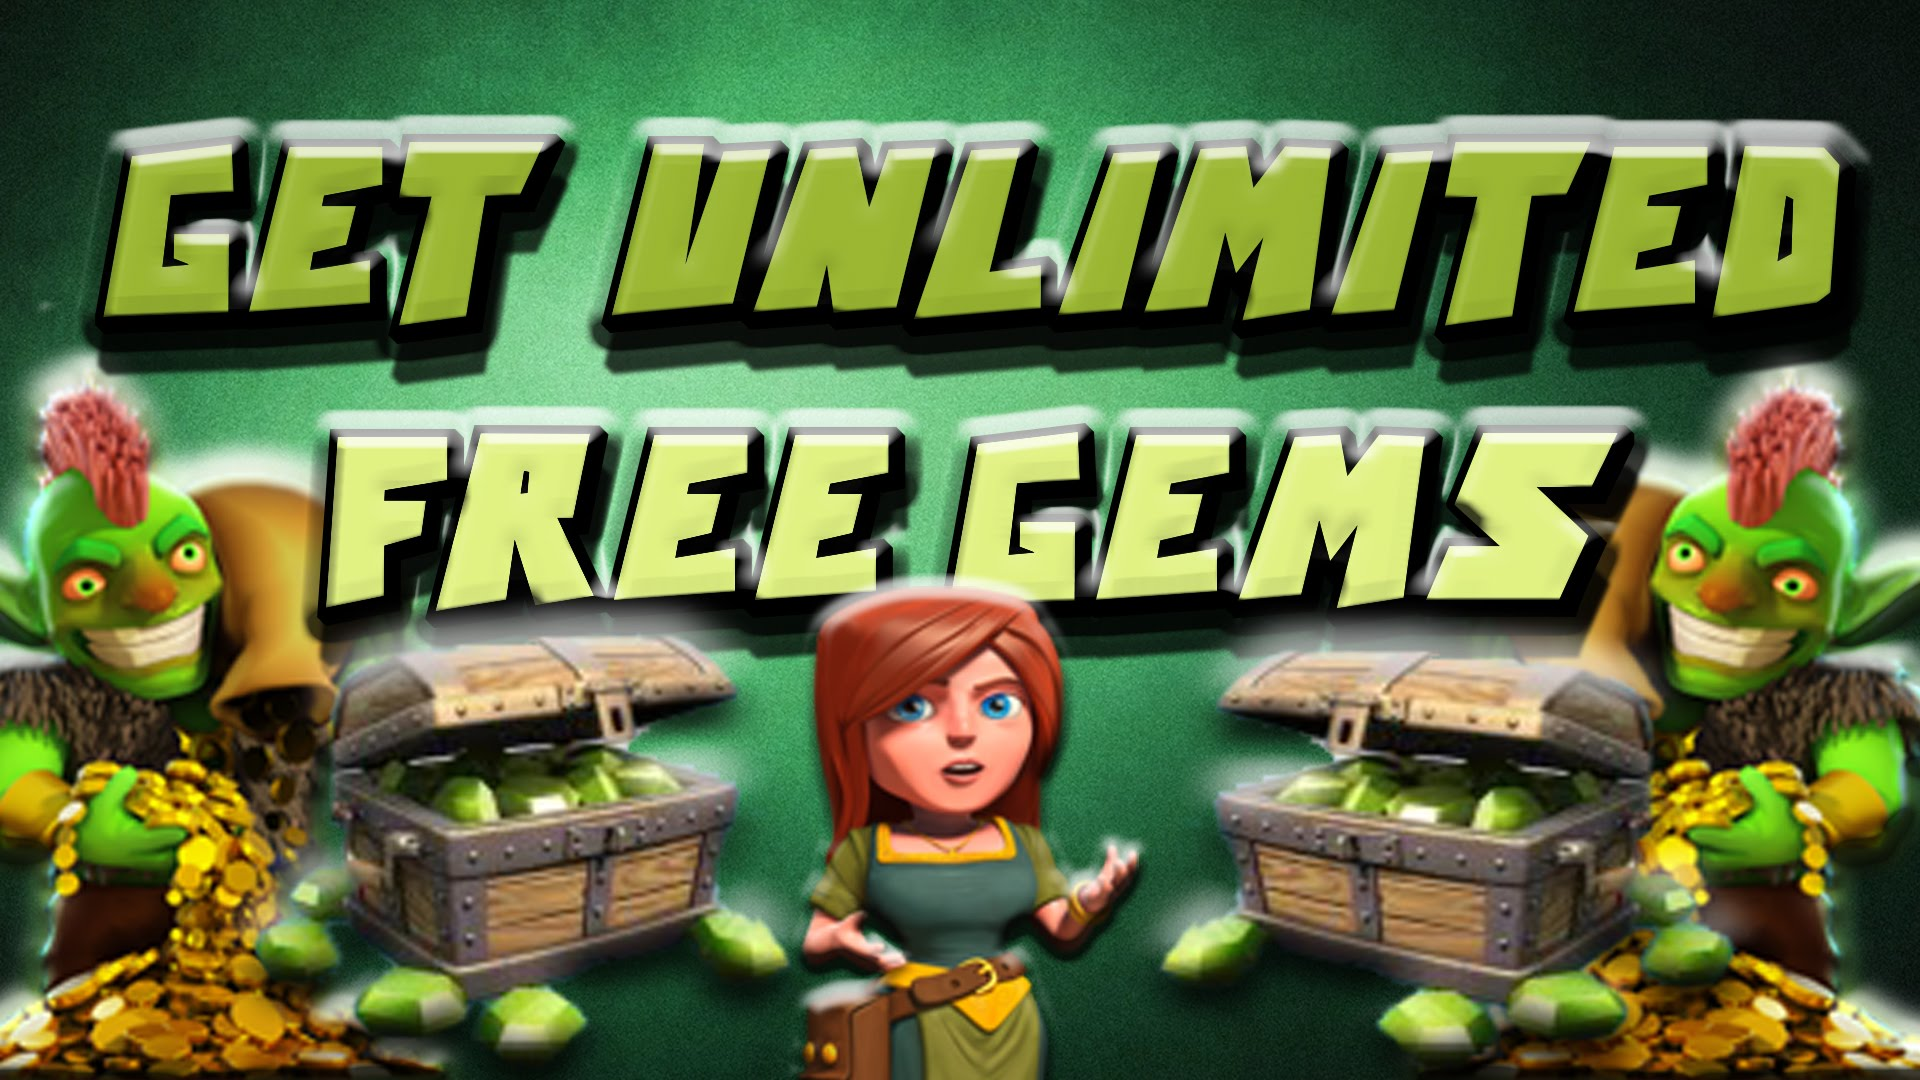 How To Get Unlimited Free Gems In Clash of Clans